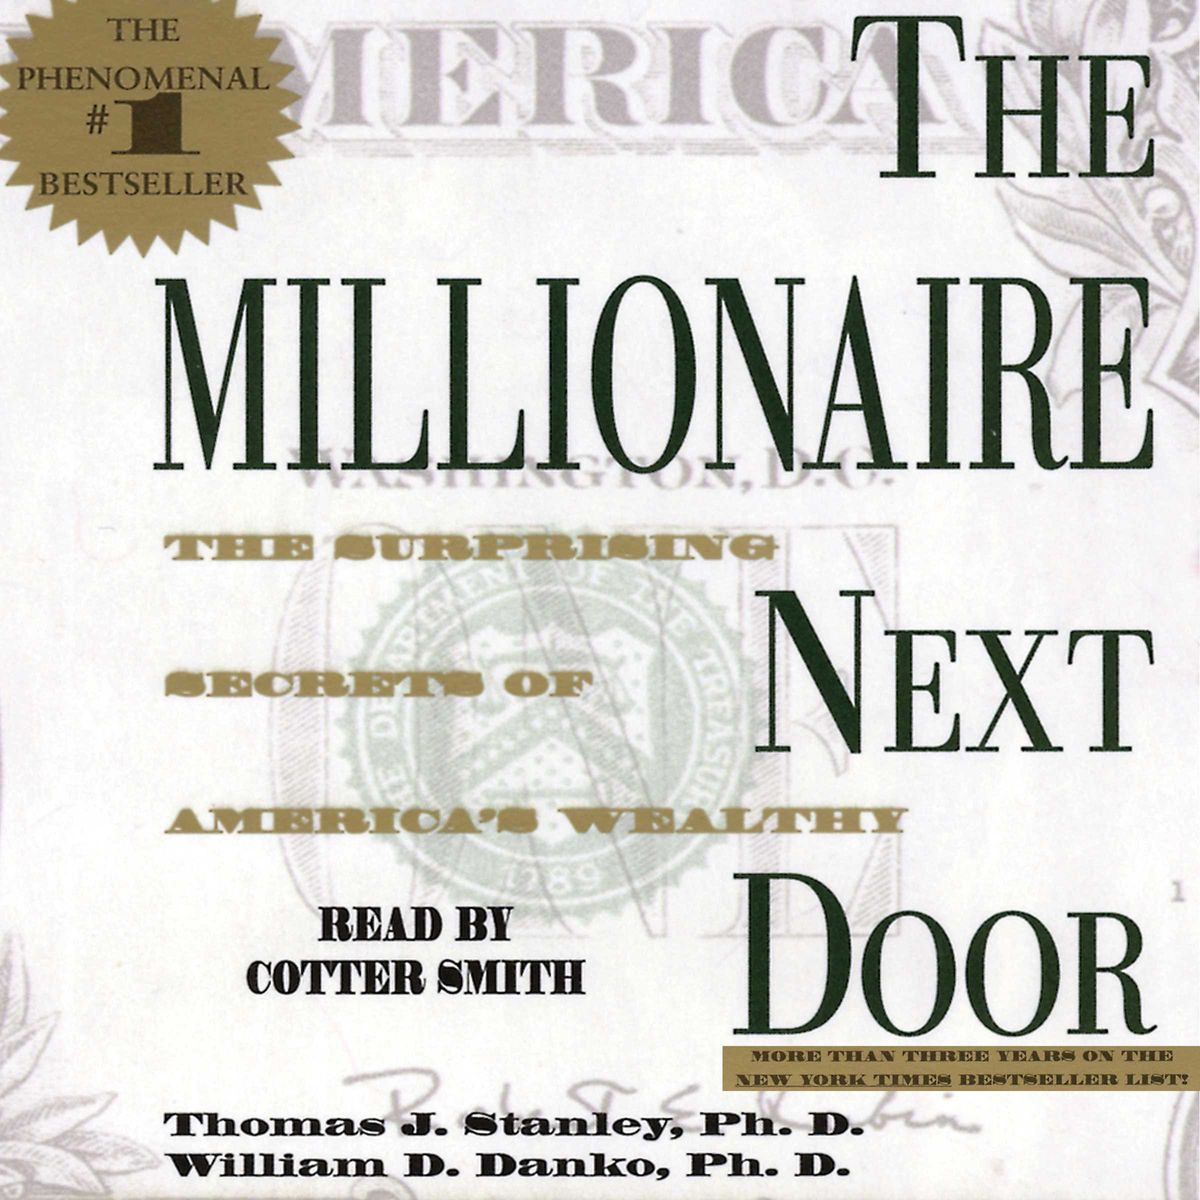 The Millionaire Next Door: The Surprising Secrets of America's Wealthy - Thomas J. Stanley, William D. Danko Act Like a Success, Think Like a Success: Discovering Your Gift and the Way to Life's Riches - Steve Harvey - reviews for audiobook - quotes, rati